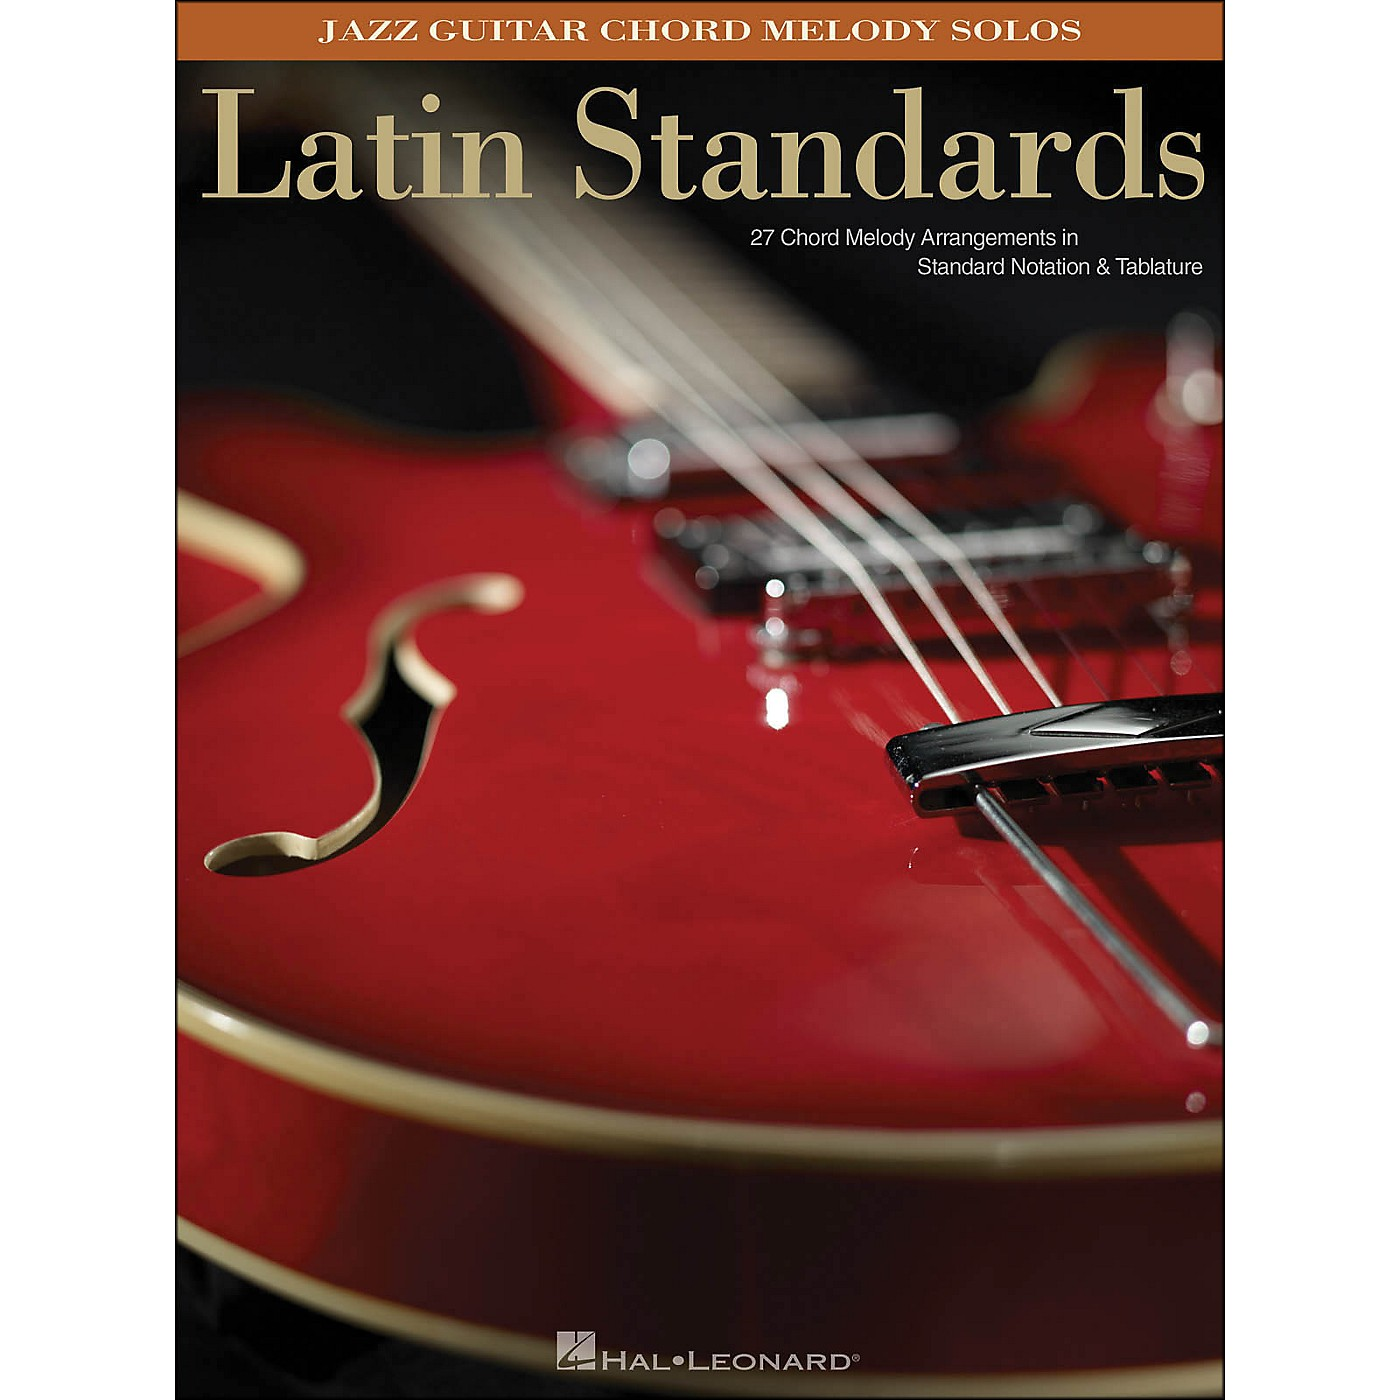 Hal Leonard Latin Standards - Jazz Guitar Chord Melody Solos thumbnail